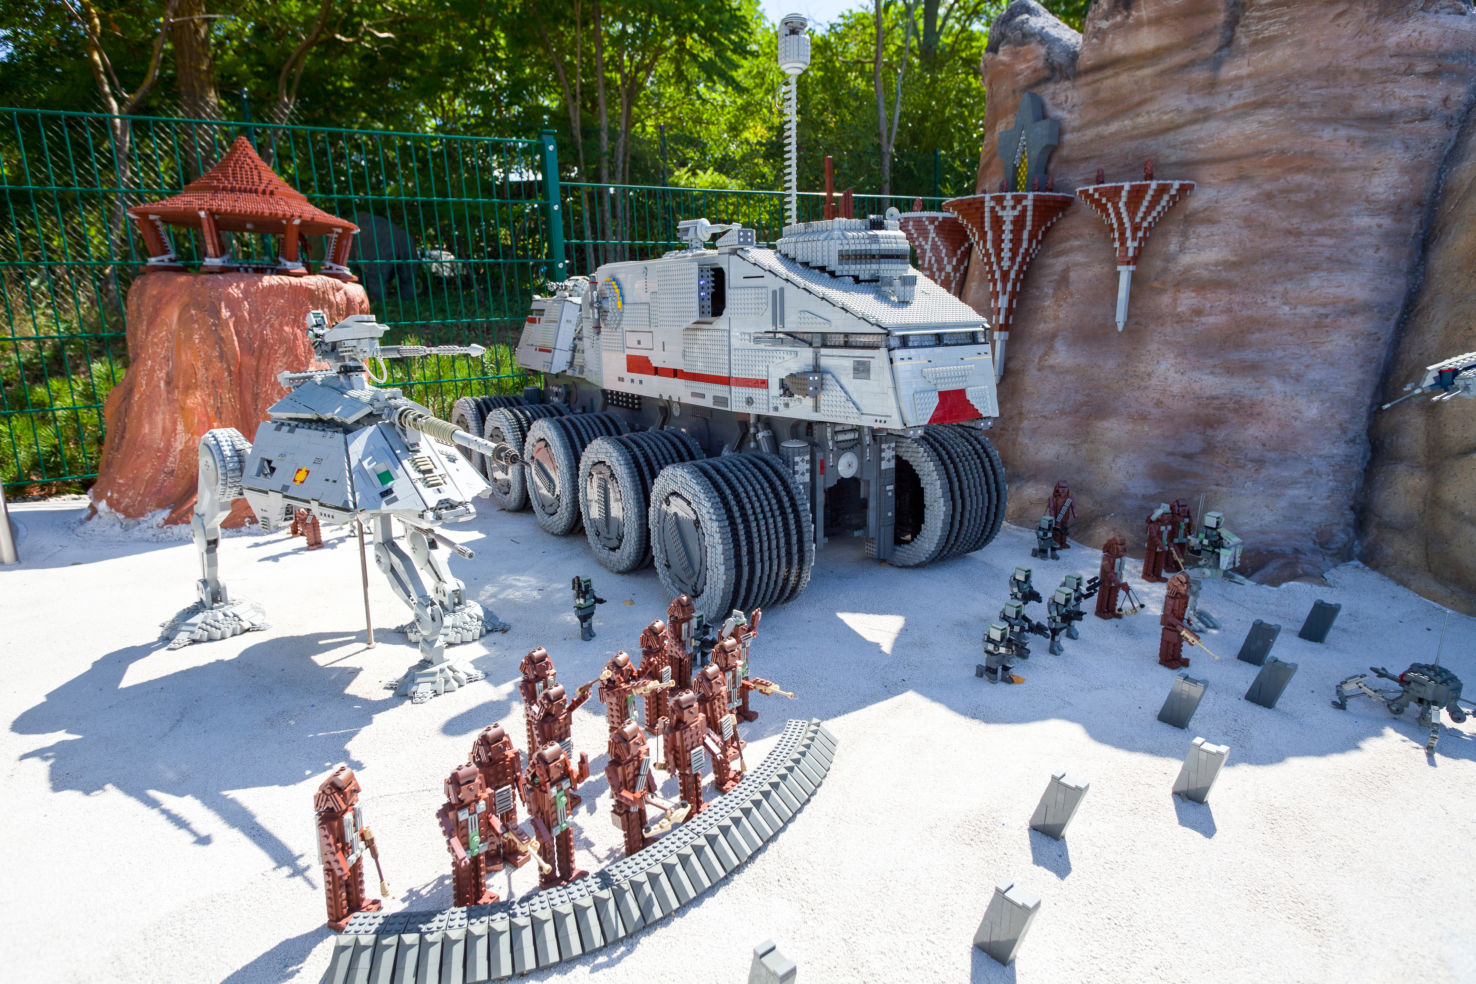 Episode from Star Wars with walkers made from plastic lego blocks in Legoland, Gunzburg, Germany.